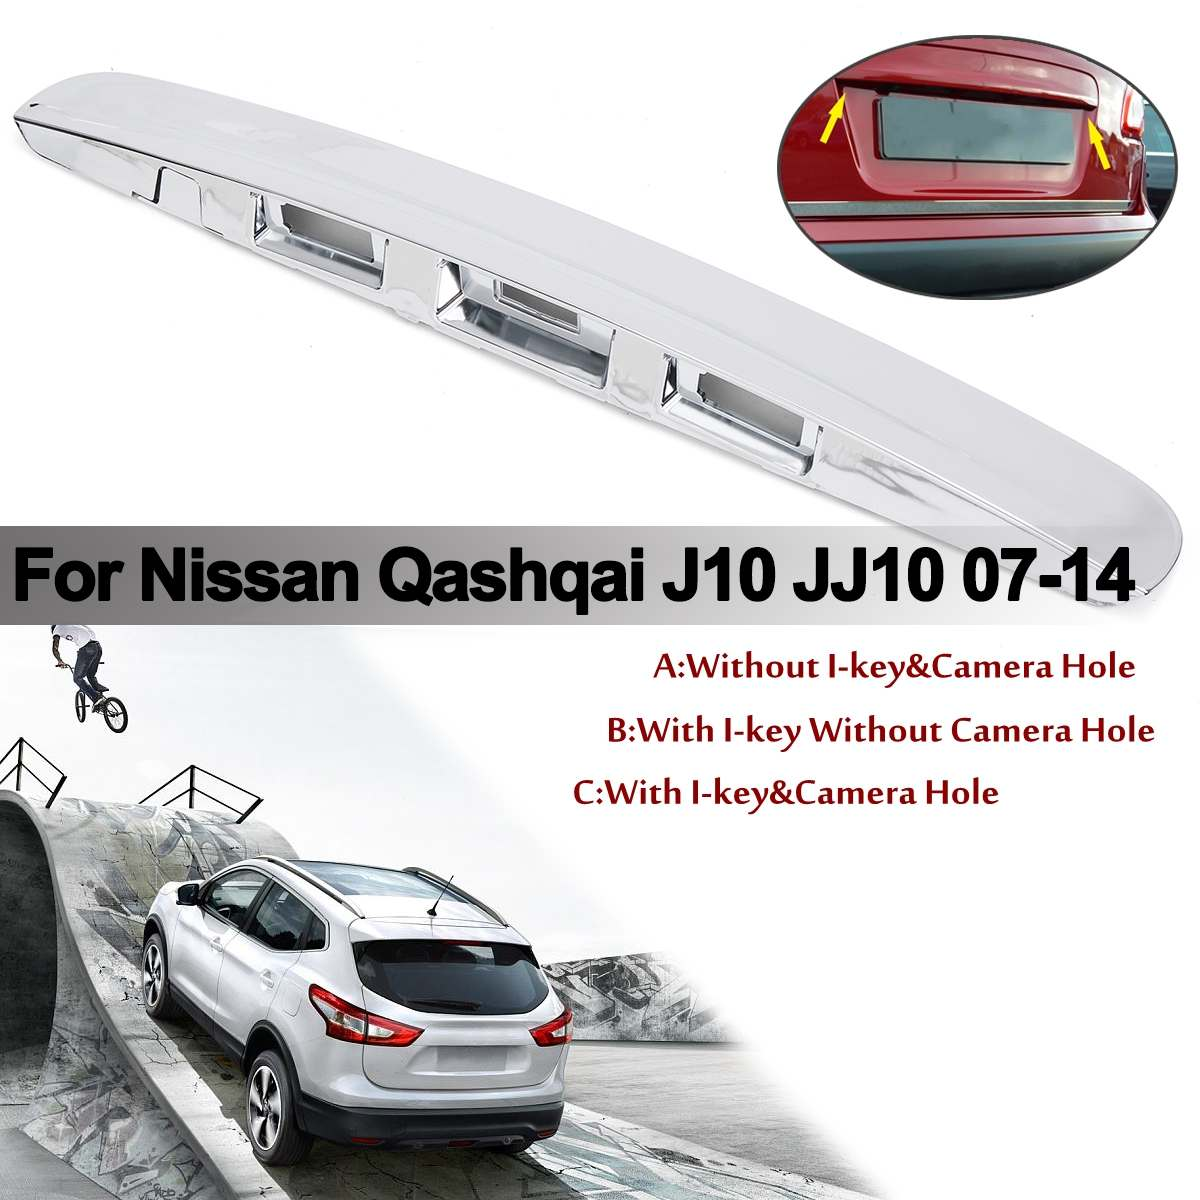 For Nissan Qashqai J10 2007-2014 Rear Tailgate Boot Lid Handle i-Key/&Camera Hole